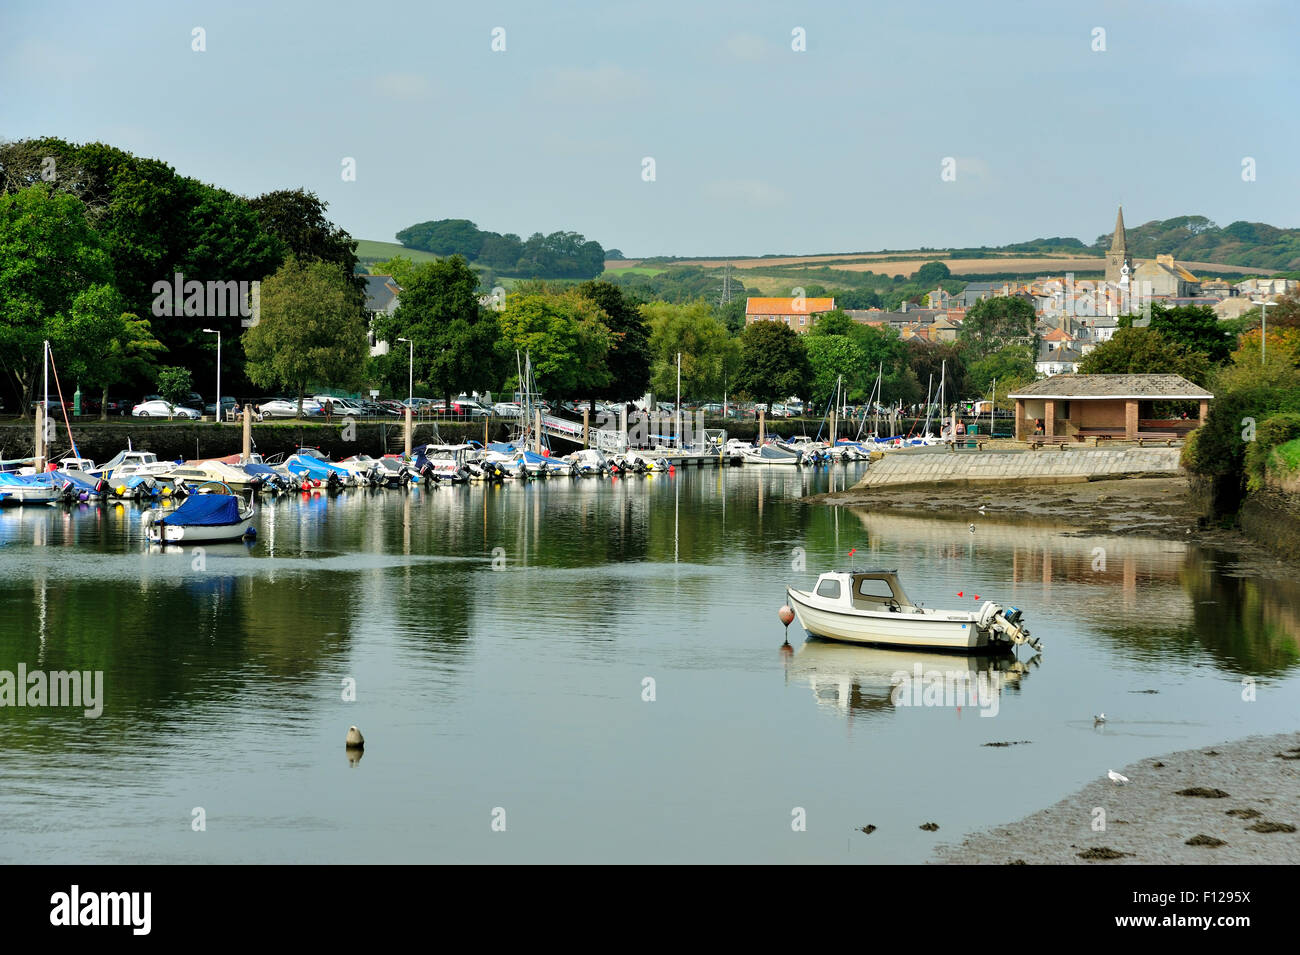 Kingsbridge Devon - Stock Image